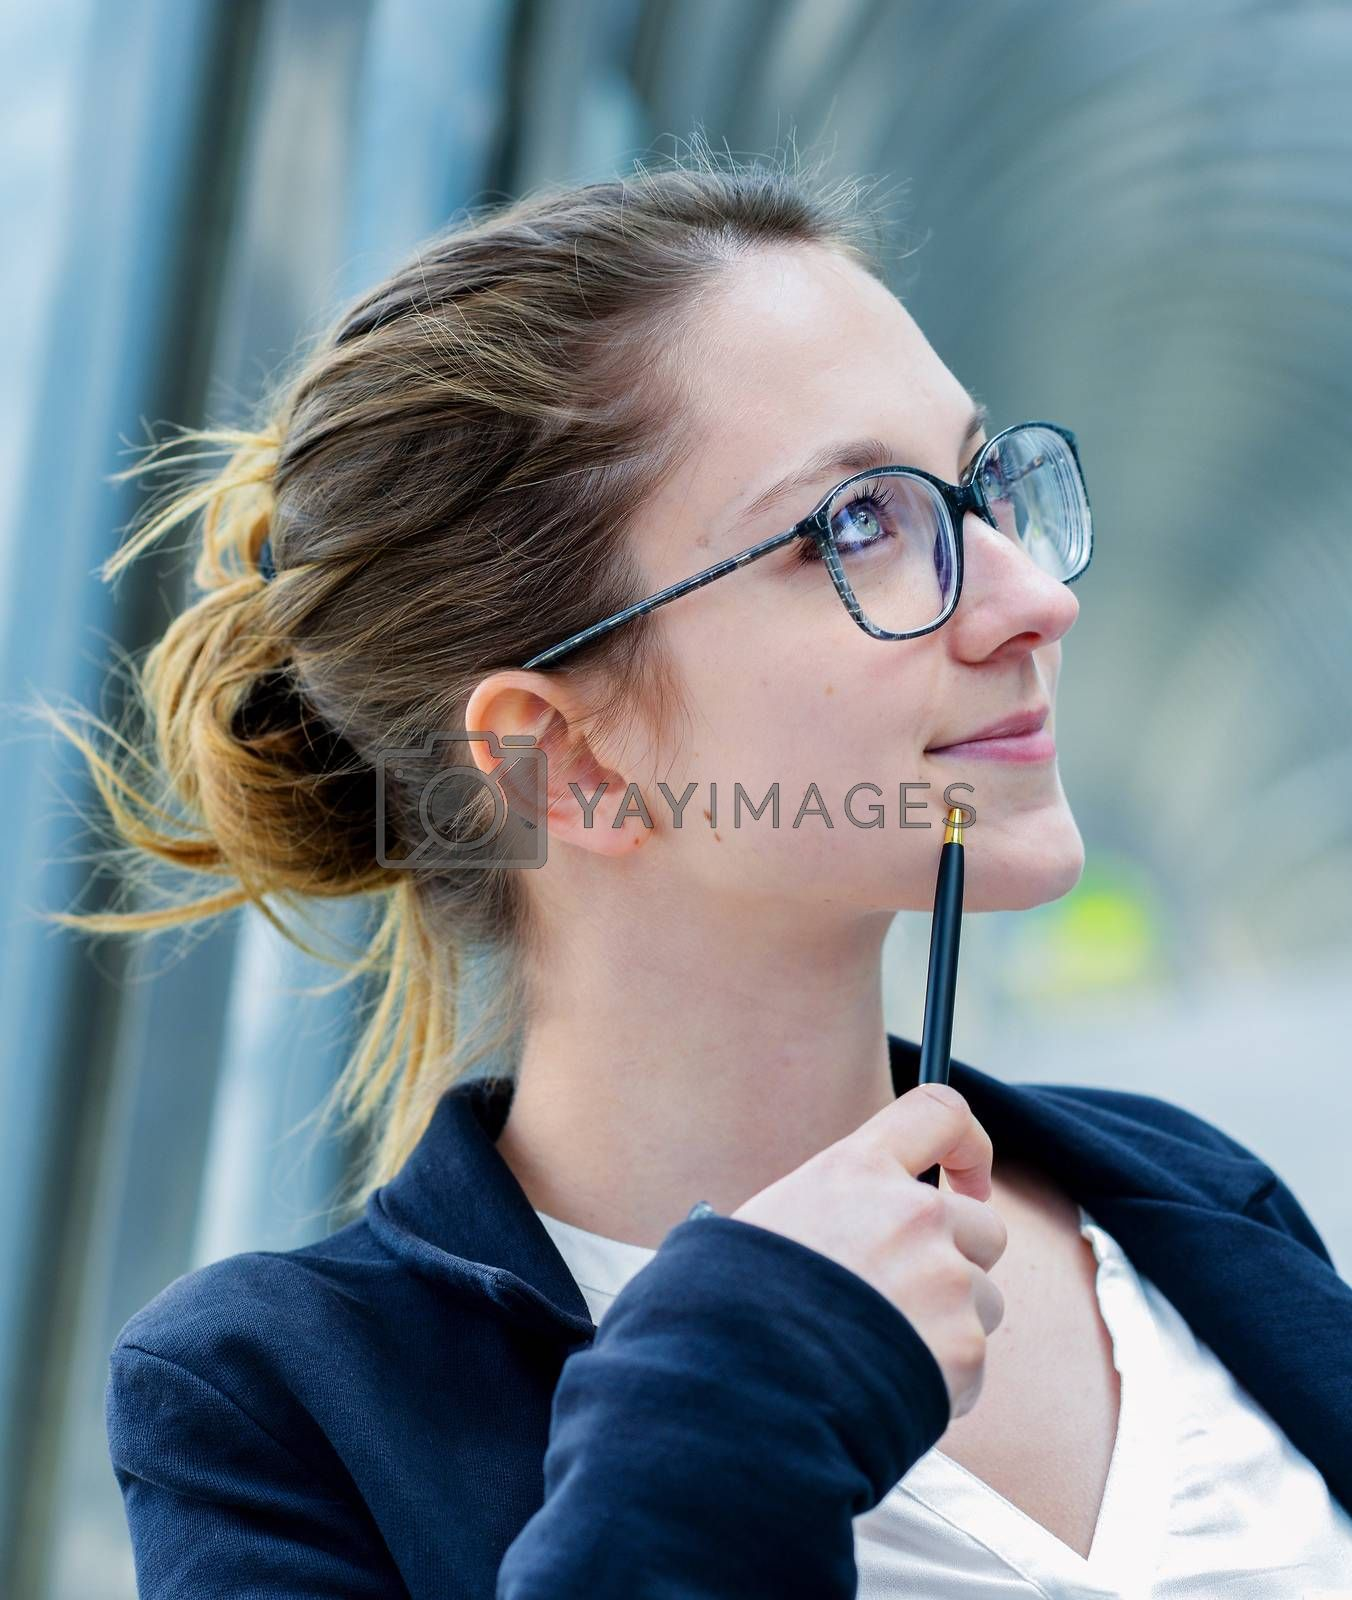 Royalty free image of Outdoor portrait of a dynamic junior executive thinking by pixinoo